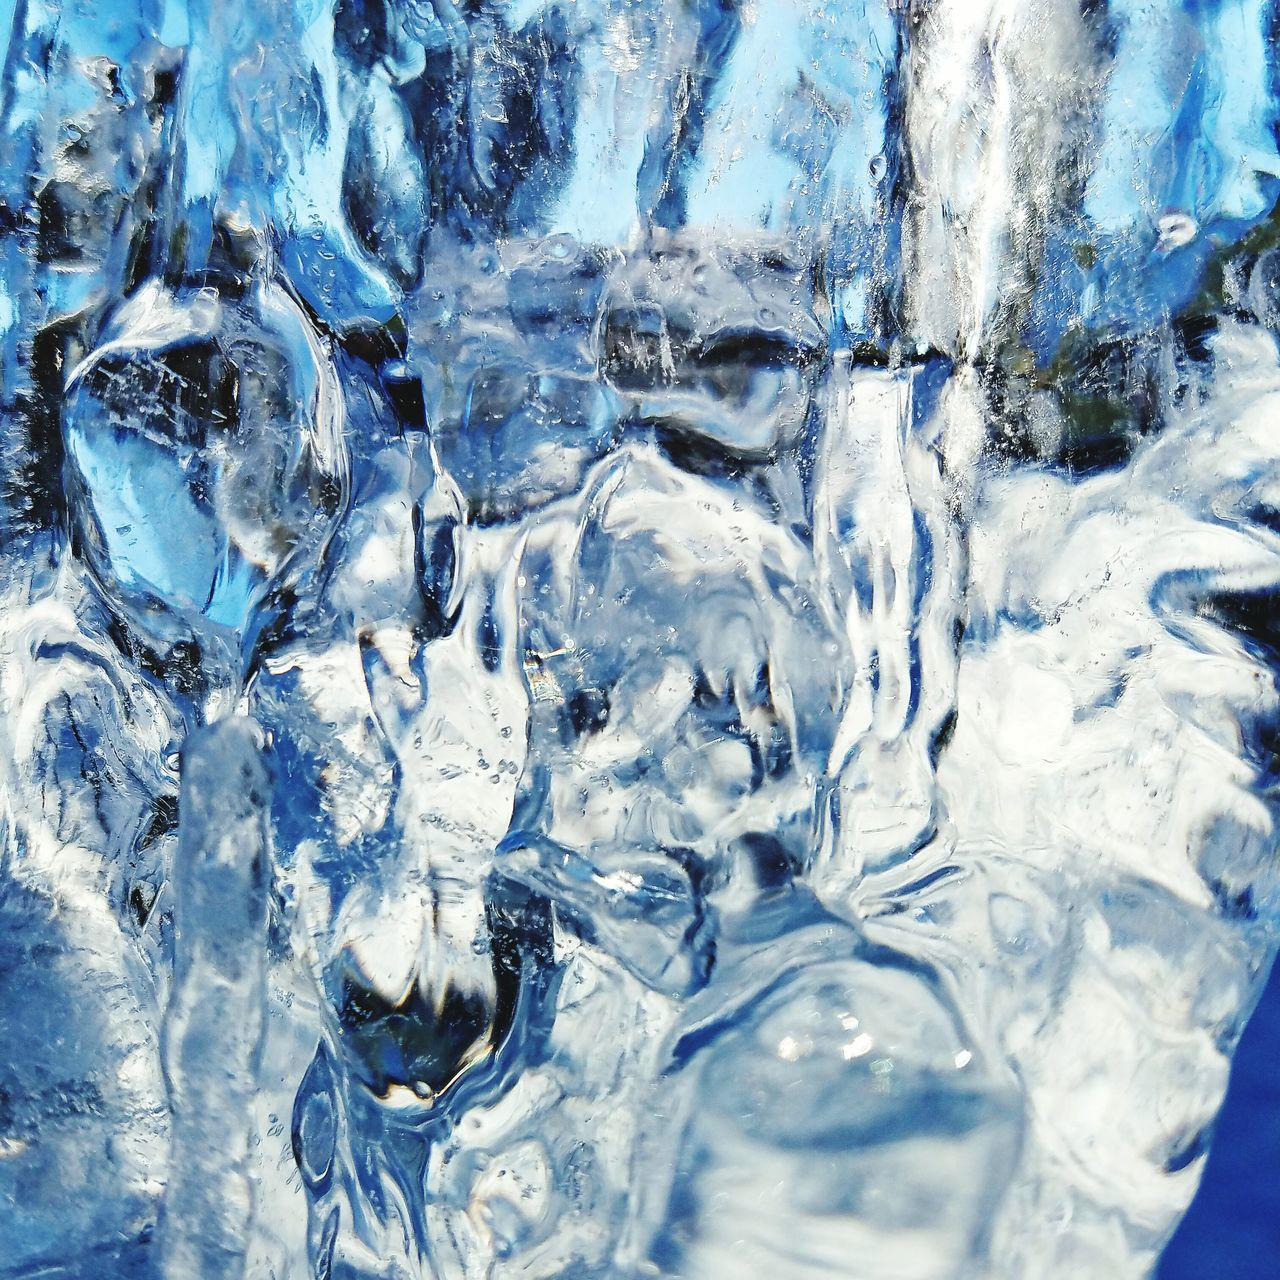 Backgrounds Abstract Close-up Blue Textured  Reflection Shiny No People Ice Cold Temperature Water Nature Check This Out Eye4photography  Ice Crystal Winter Darryn Doyle Beauty In Nature Shiny Frozen Motion Icicles Textured  Background Textured